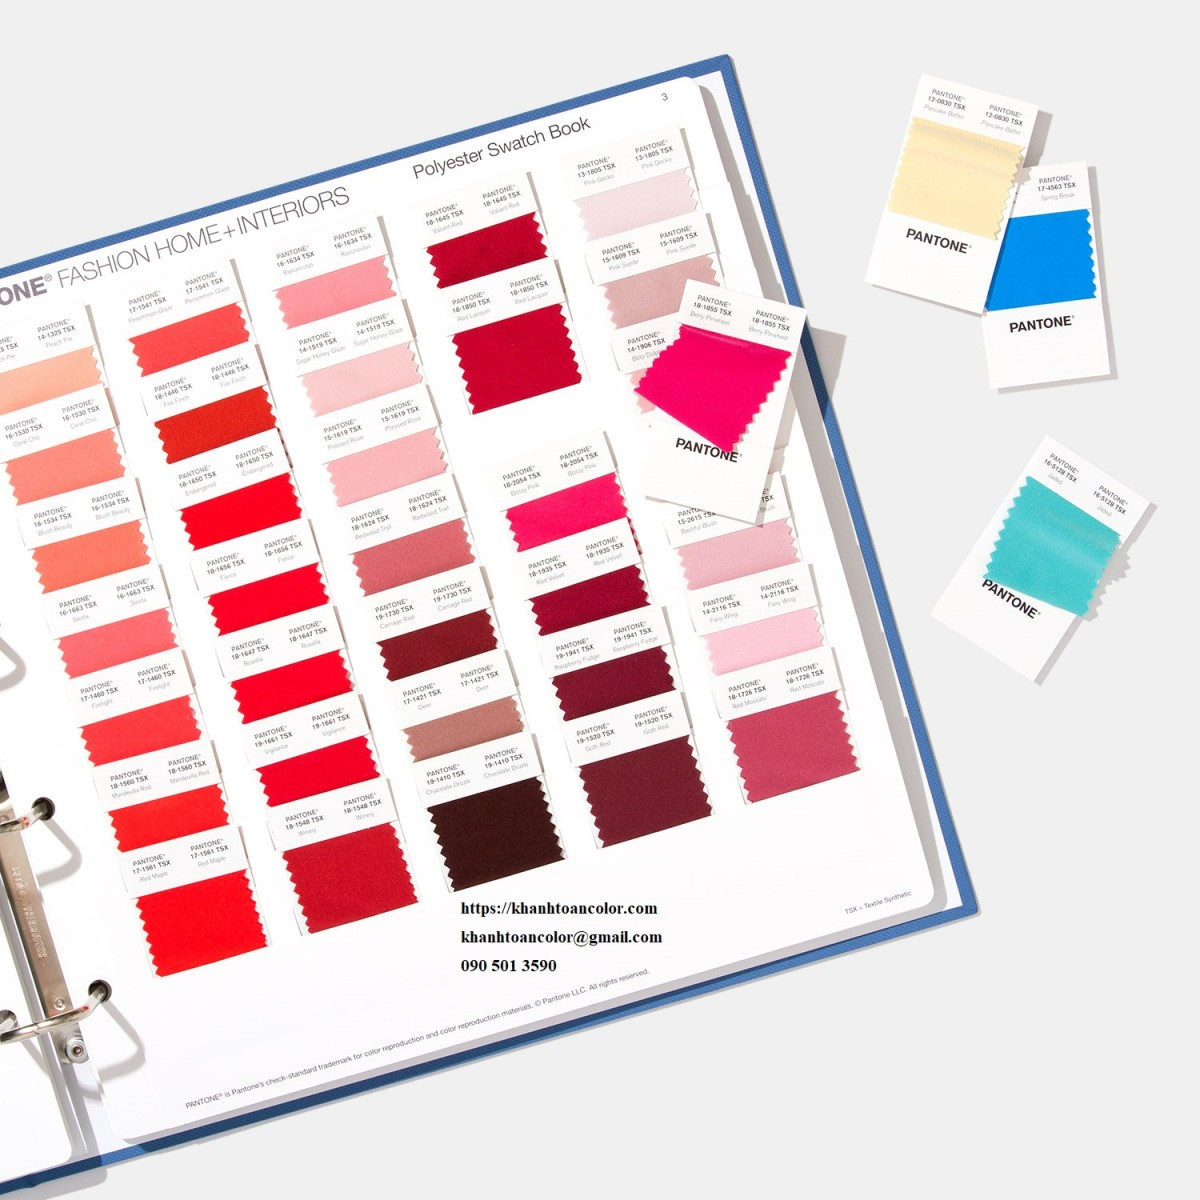 pantone mau moi nhat FFS200-pantone-fashion-home-interiors-polyester-swatch-book-product-2